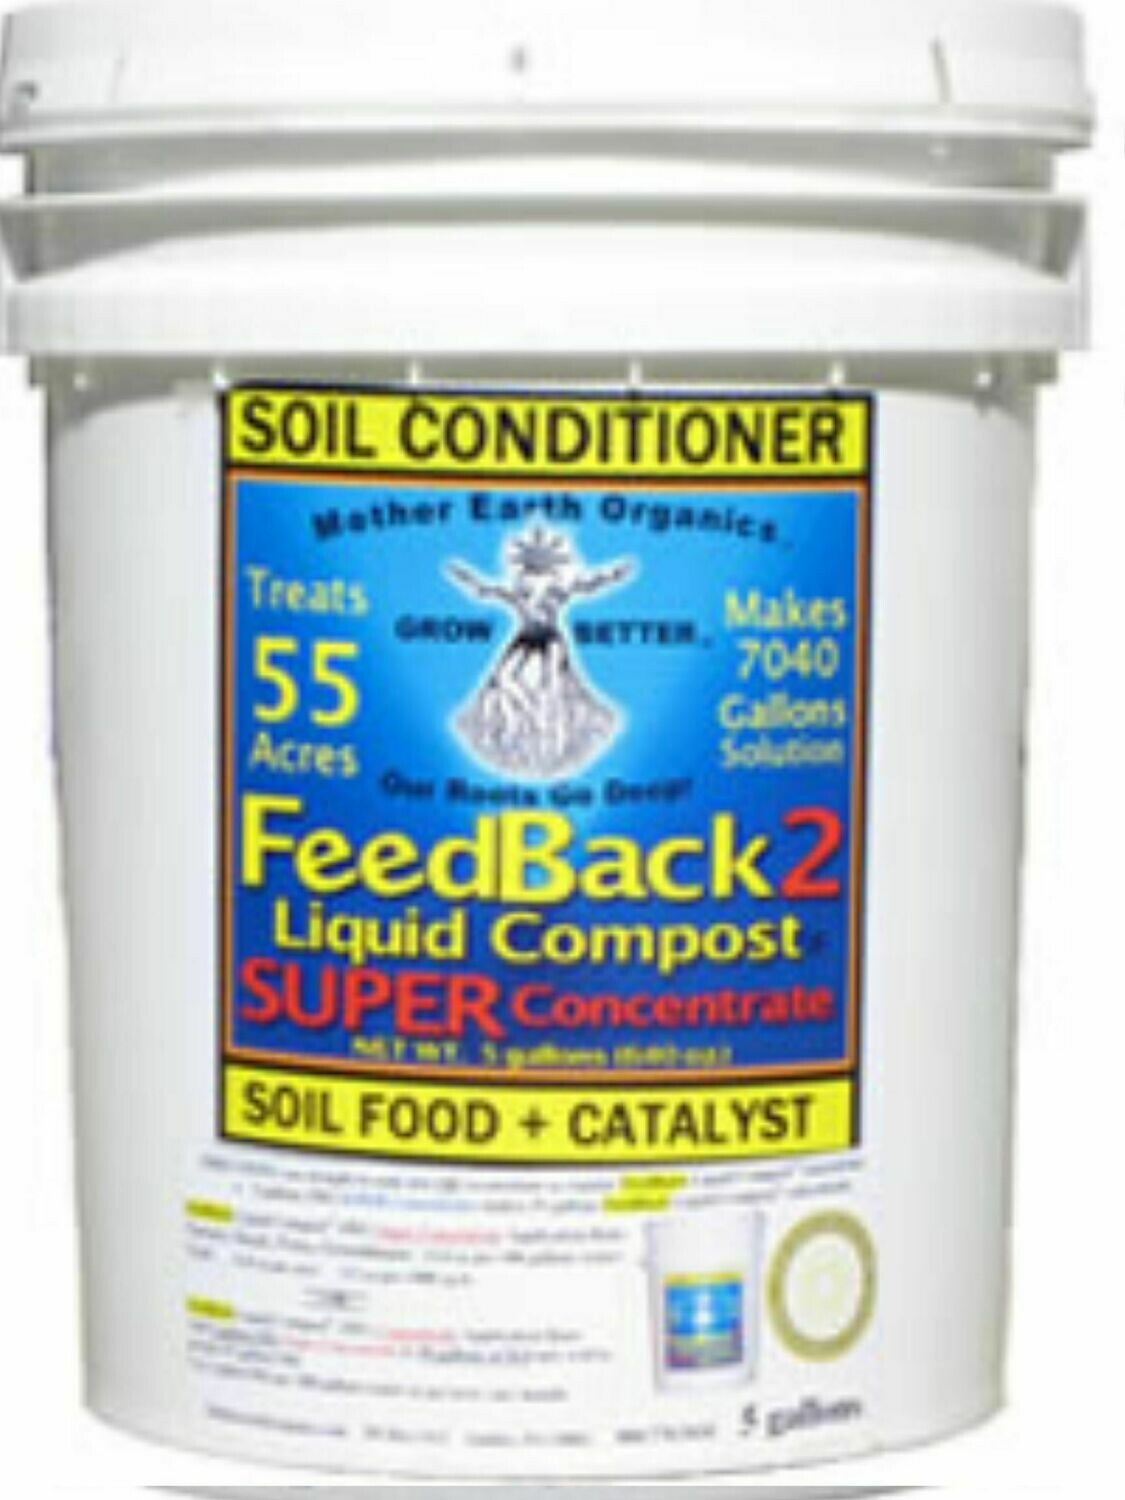 FEEDBACK Liquid Compost Super Concentrate